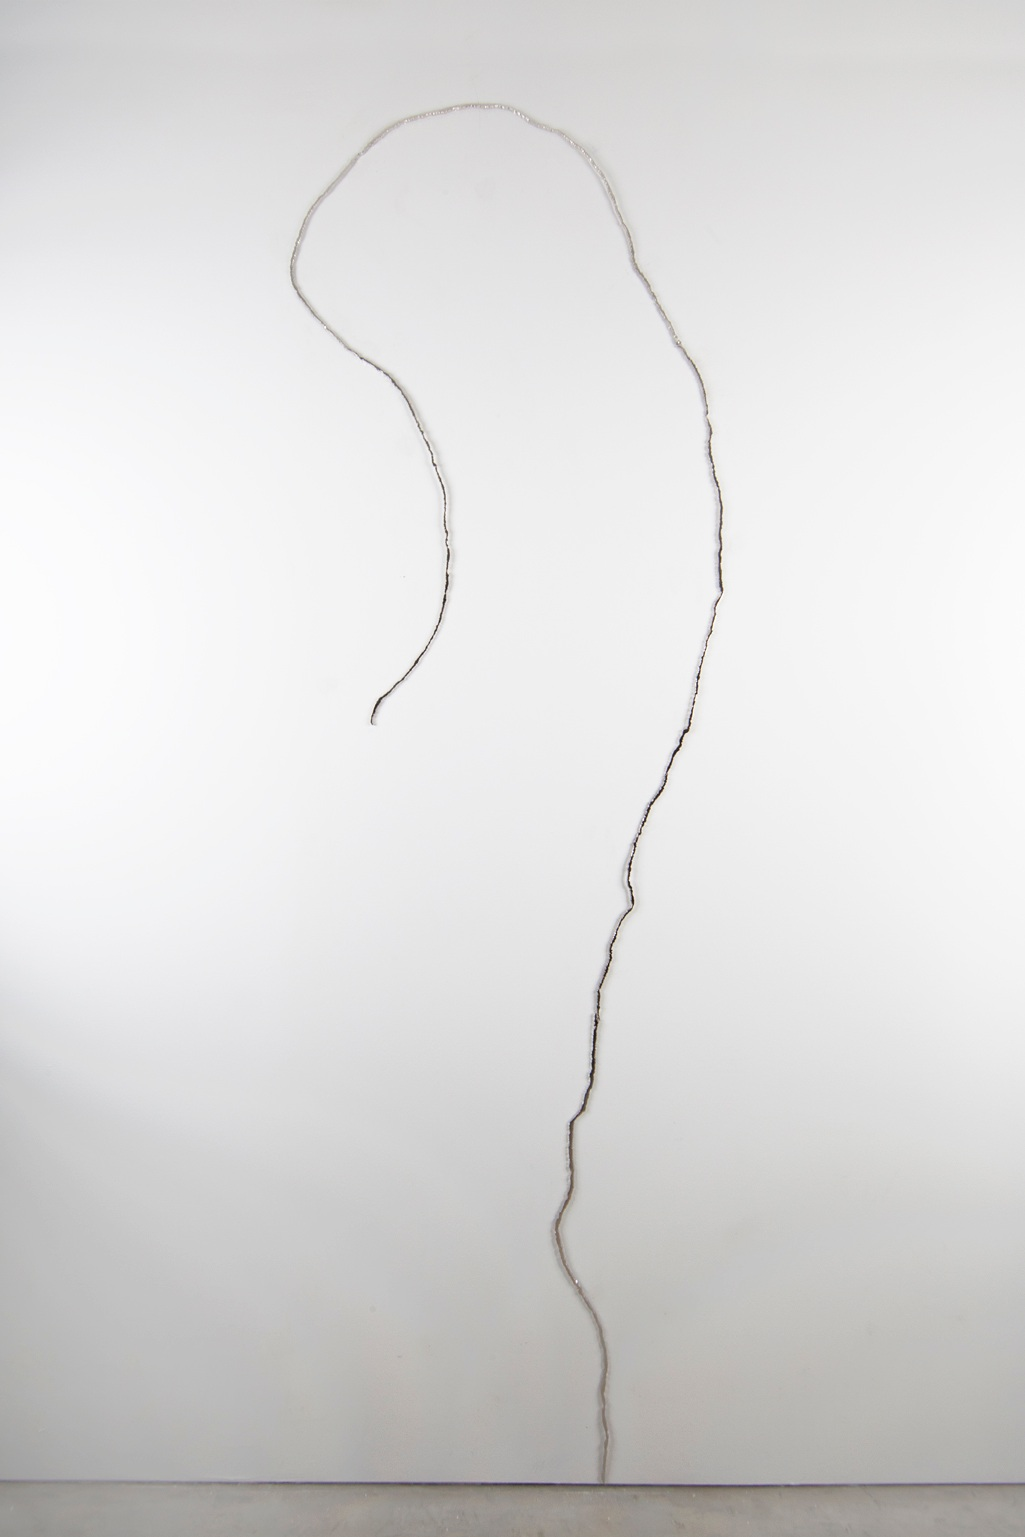 Misteriosa, 2013. Nickel plated and mirror polished steel, 120 x 51 x .25 inches -